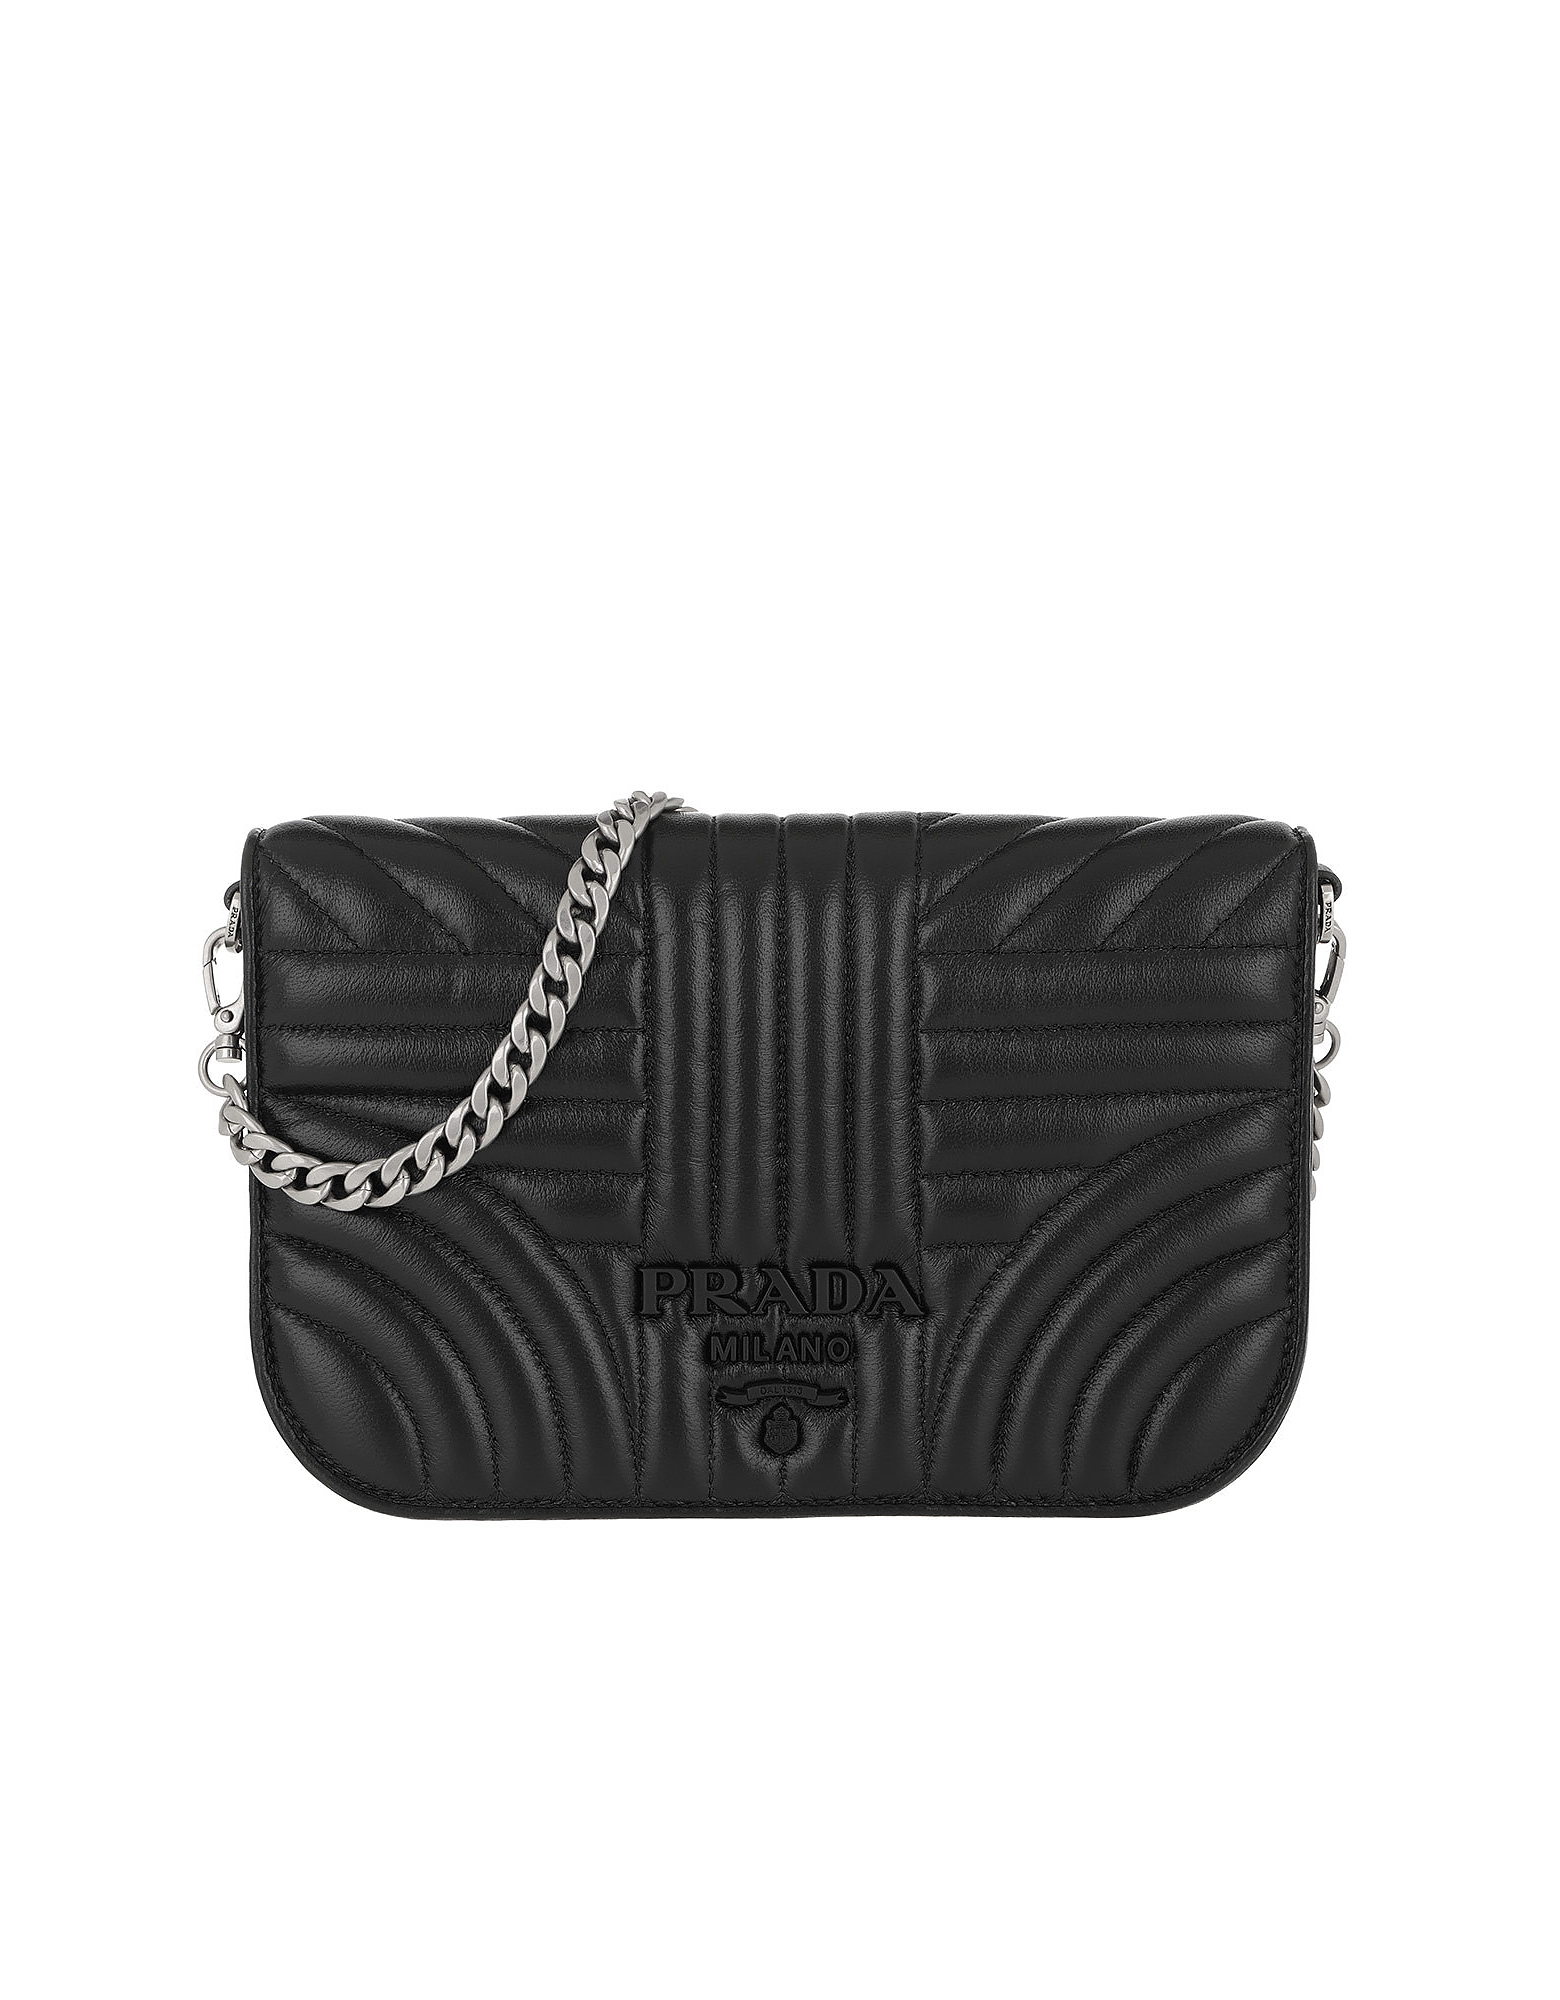 Prada Handbags, Quilted Diagramme Nappa Leather Bag Black